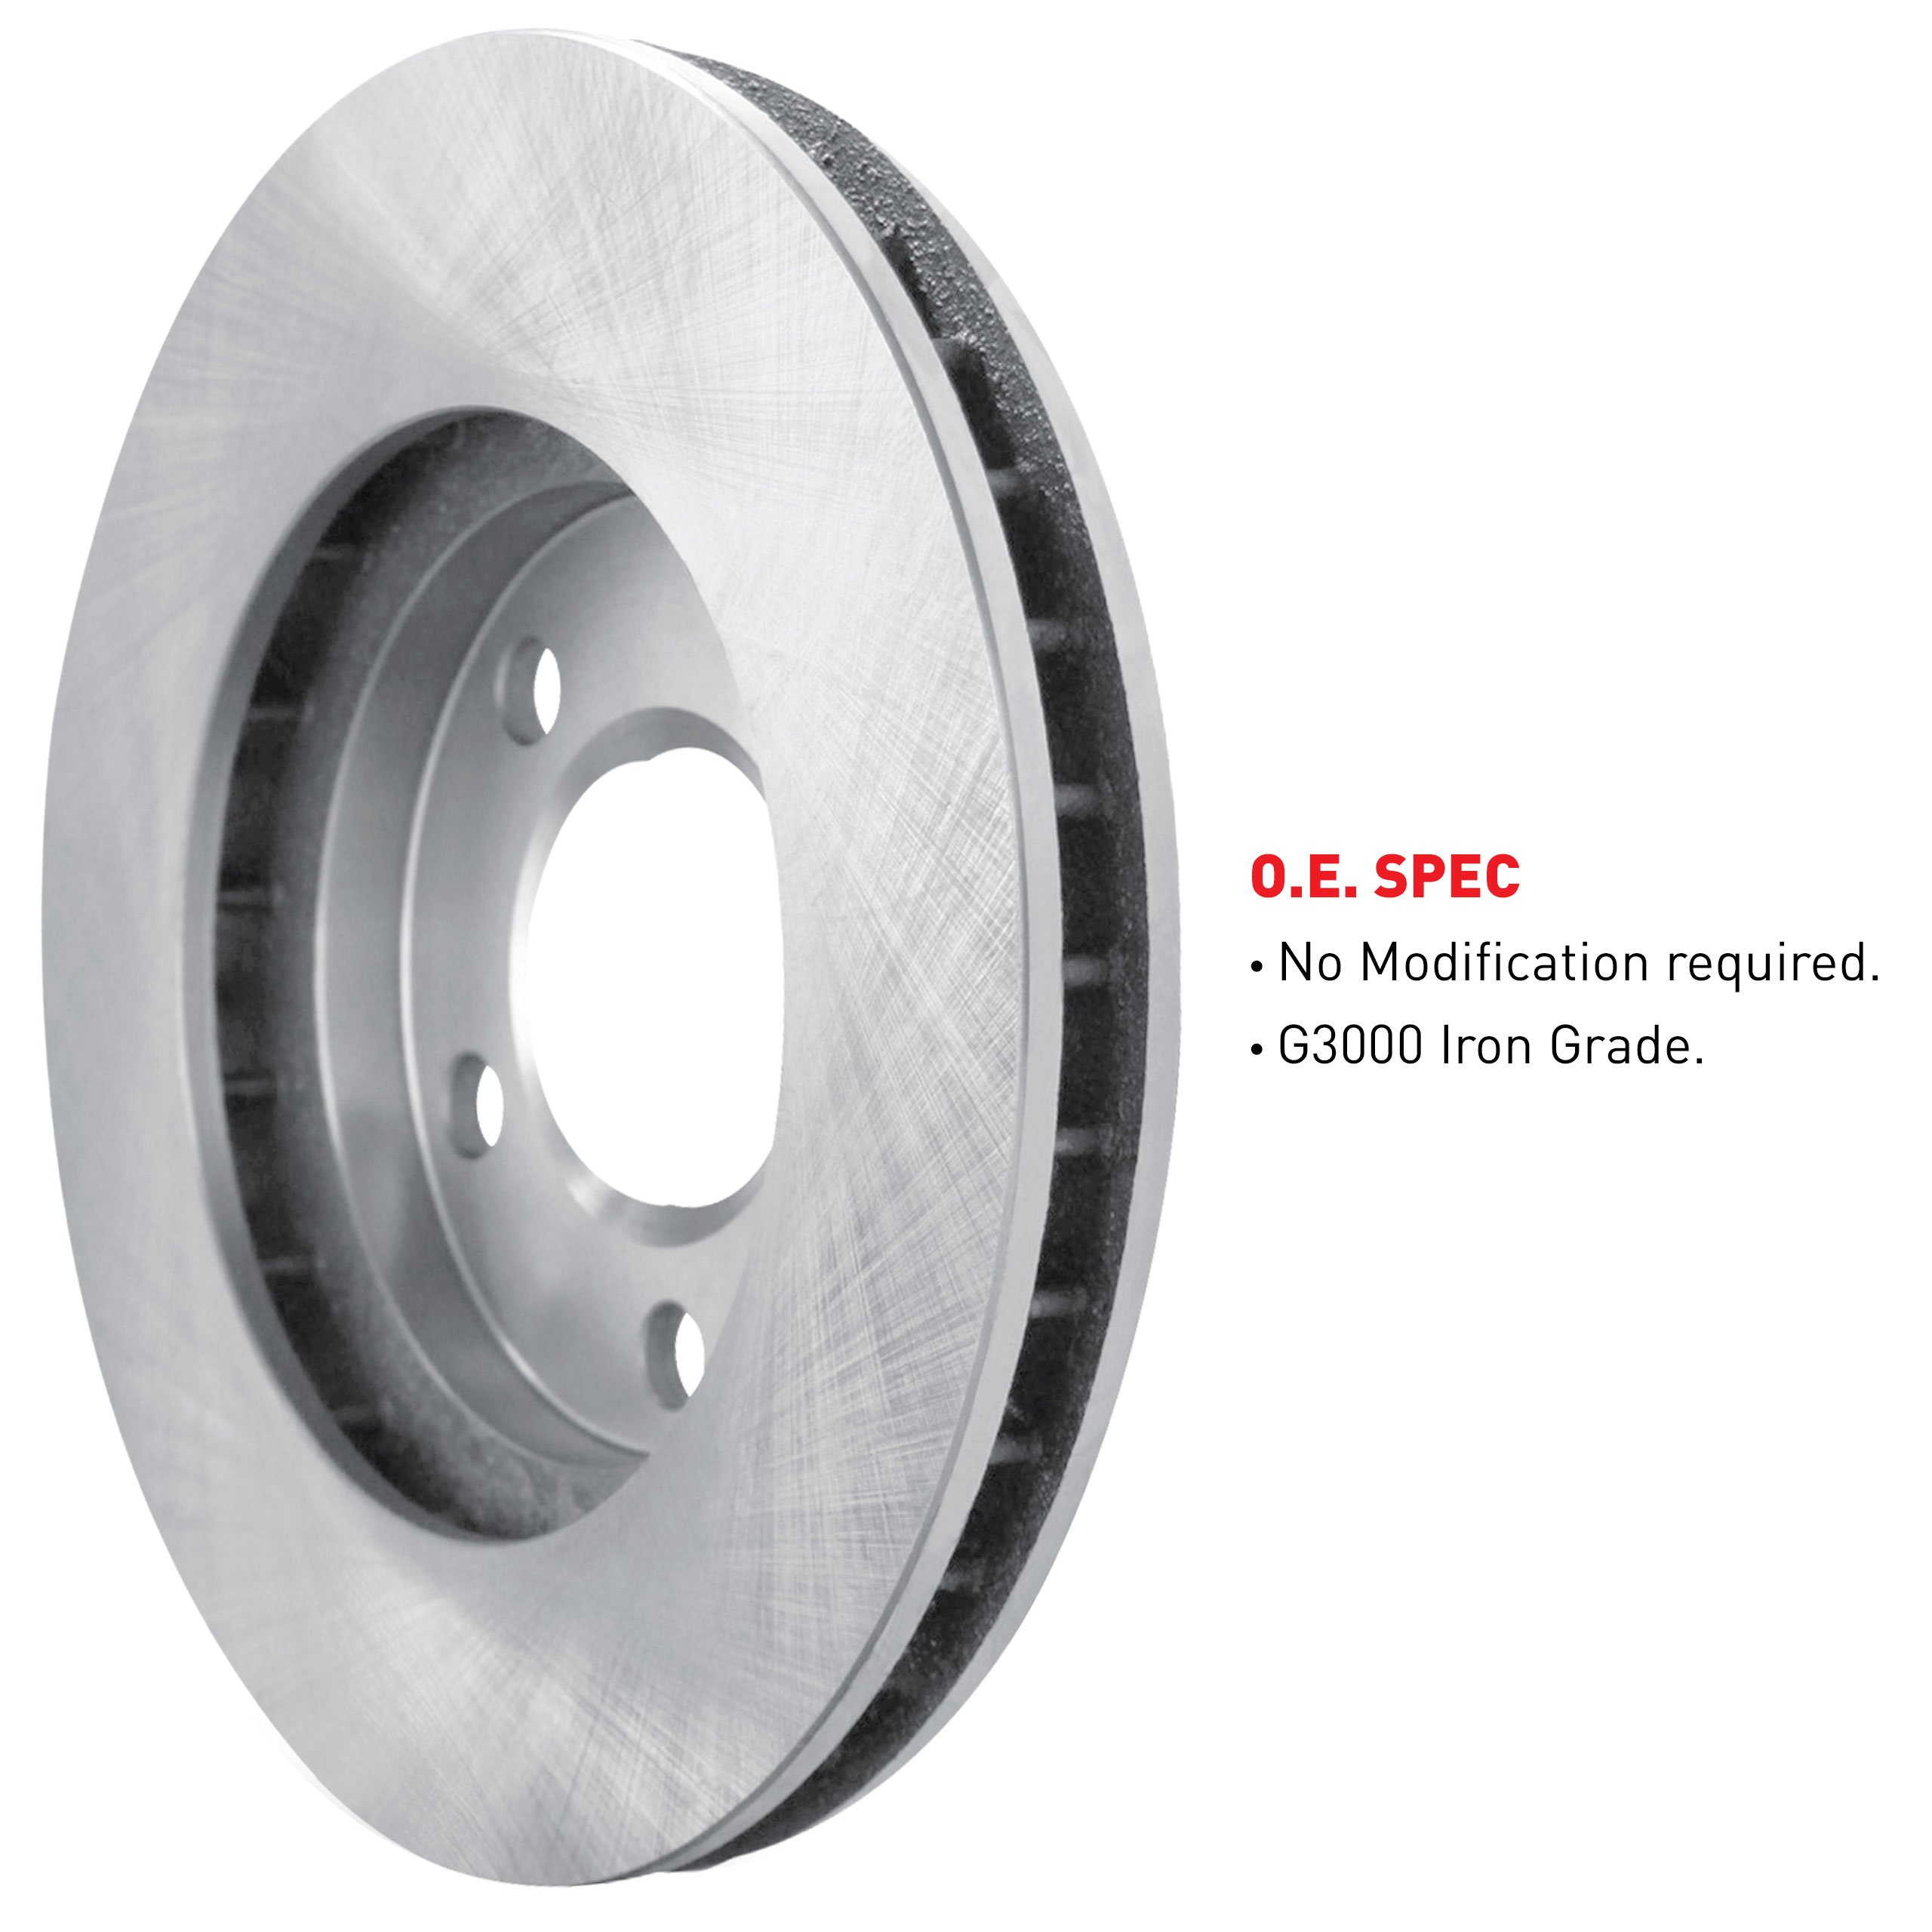 R1 Concepts KEOE11428 Eline Series Replacement Rotors And Ceramic Pads Kit - Front by R1 Concepts (Image #3)